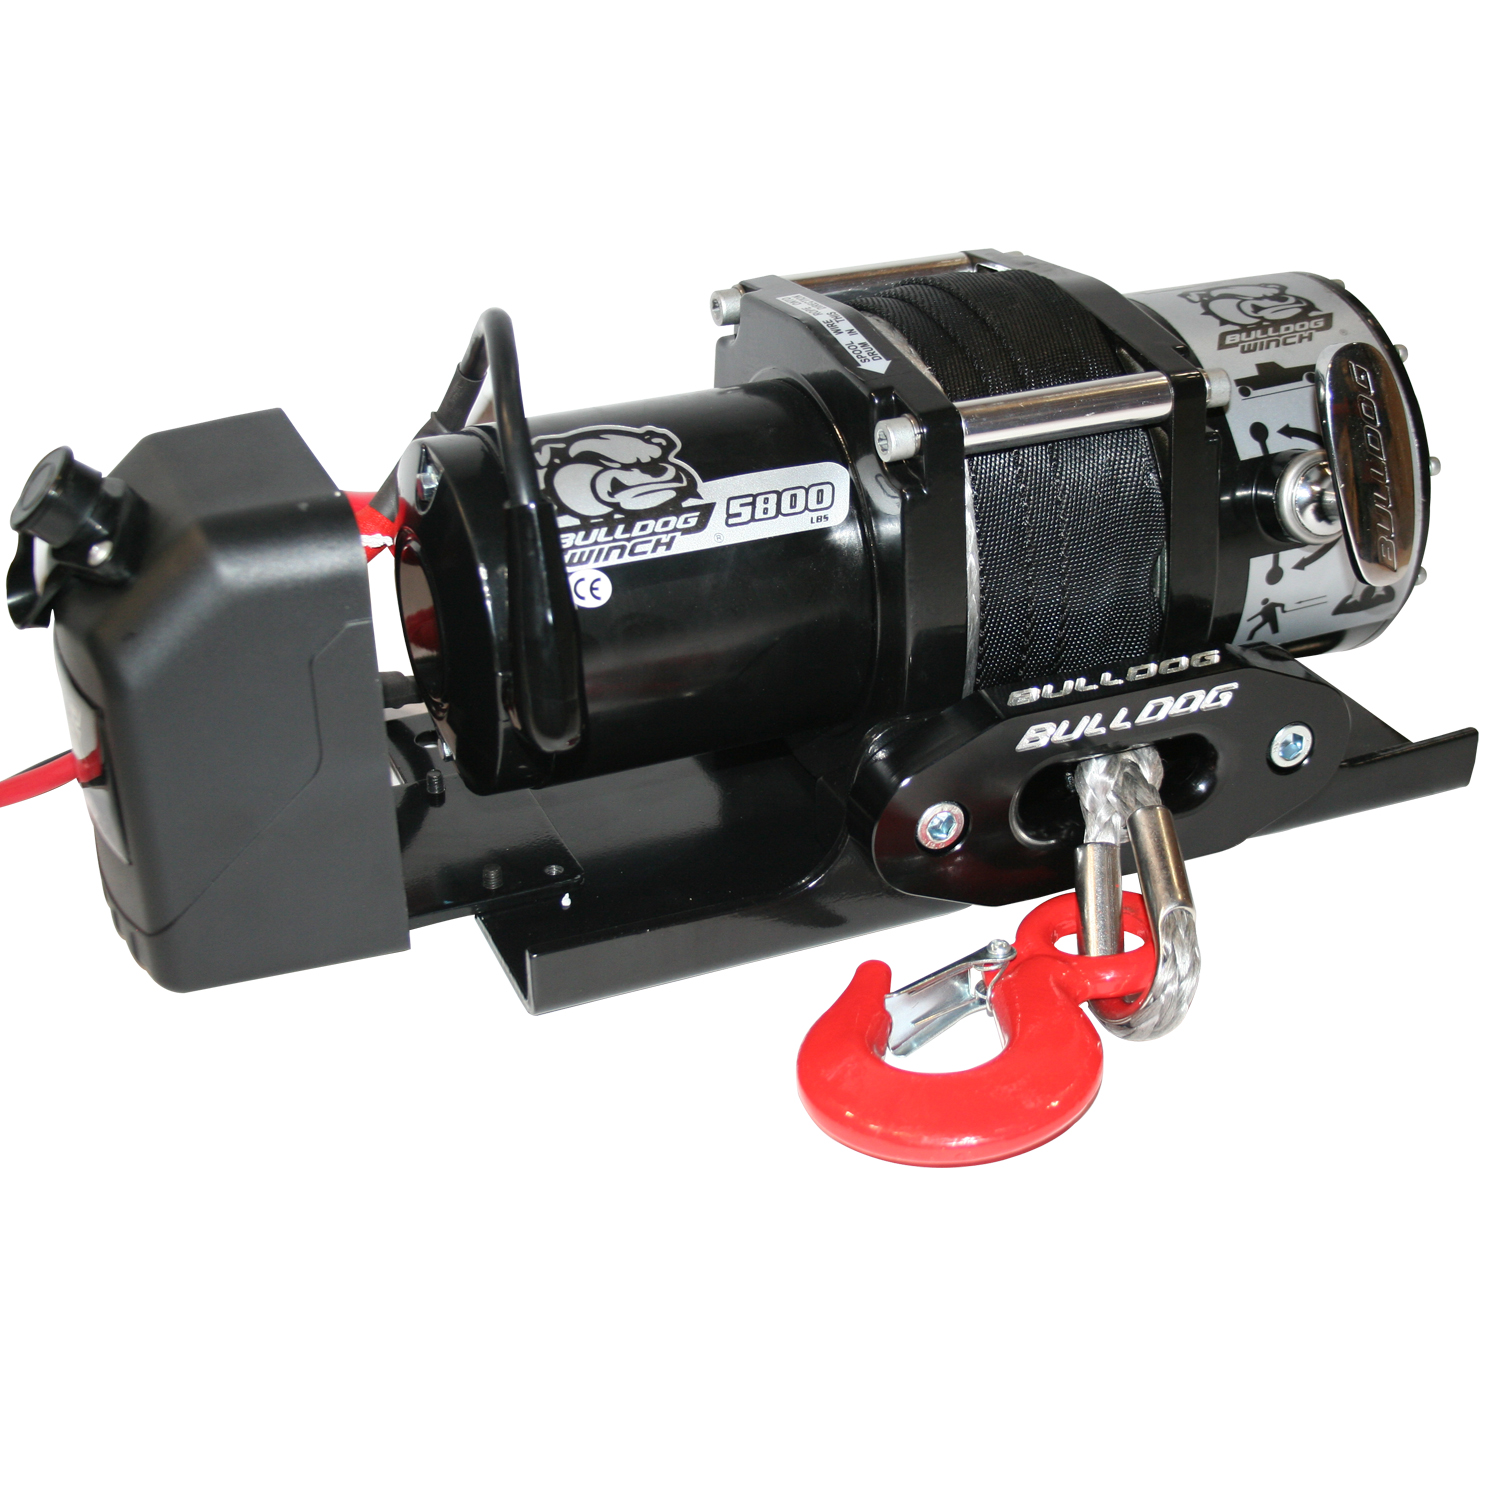 Bulldog Winch 5,800lb Trailer Winch w/ 50ft Synthetic Rope